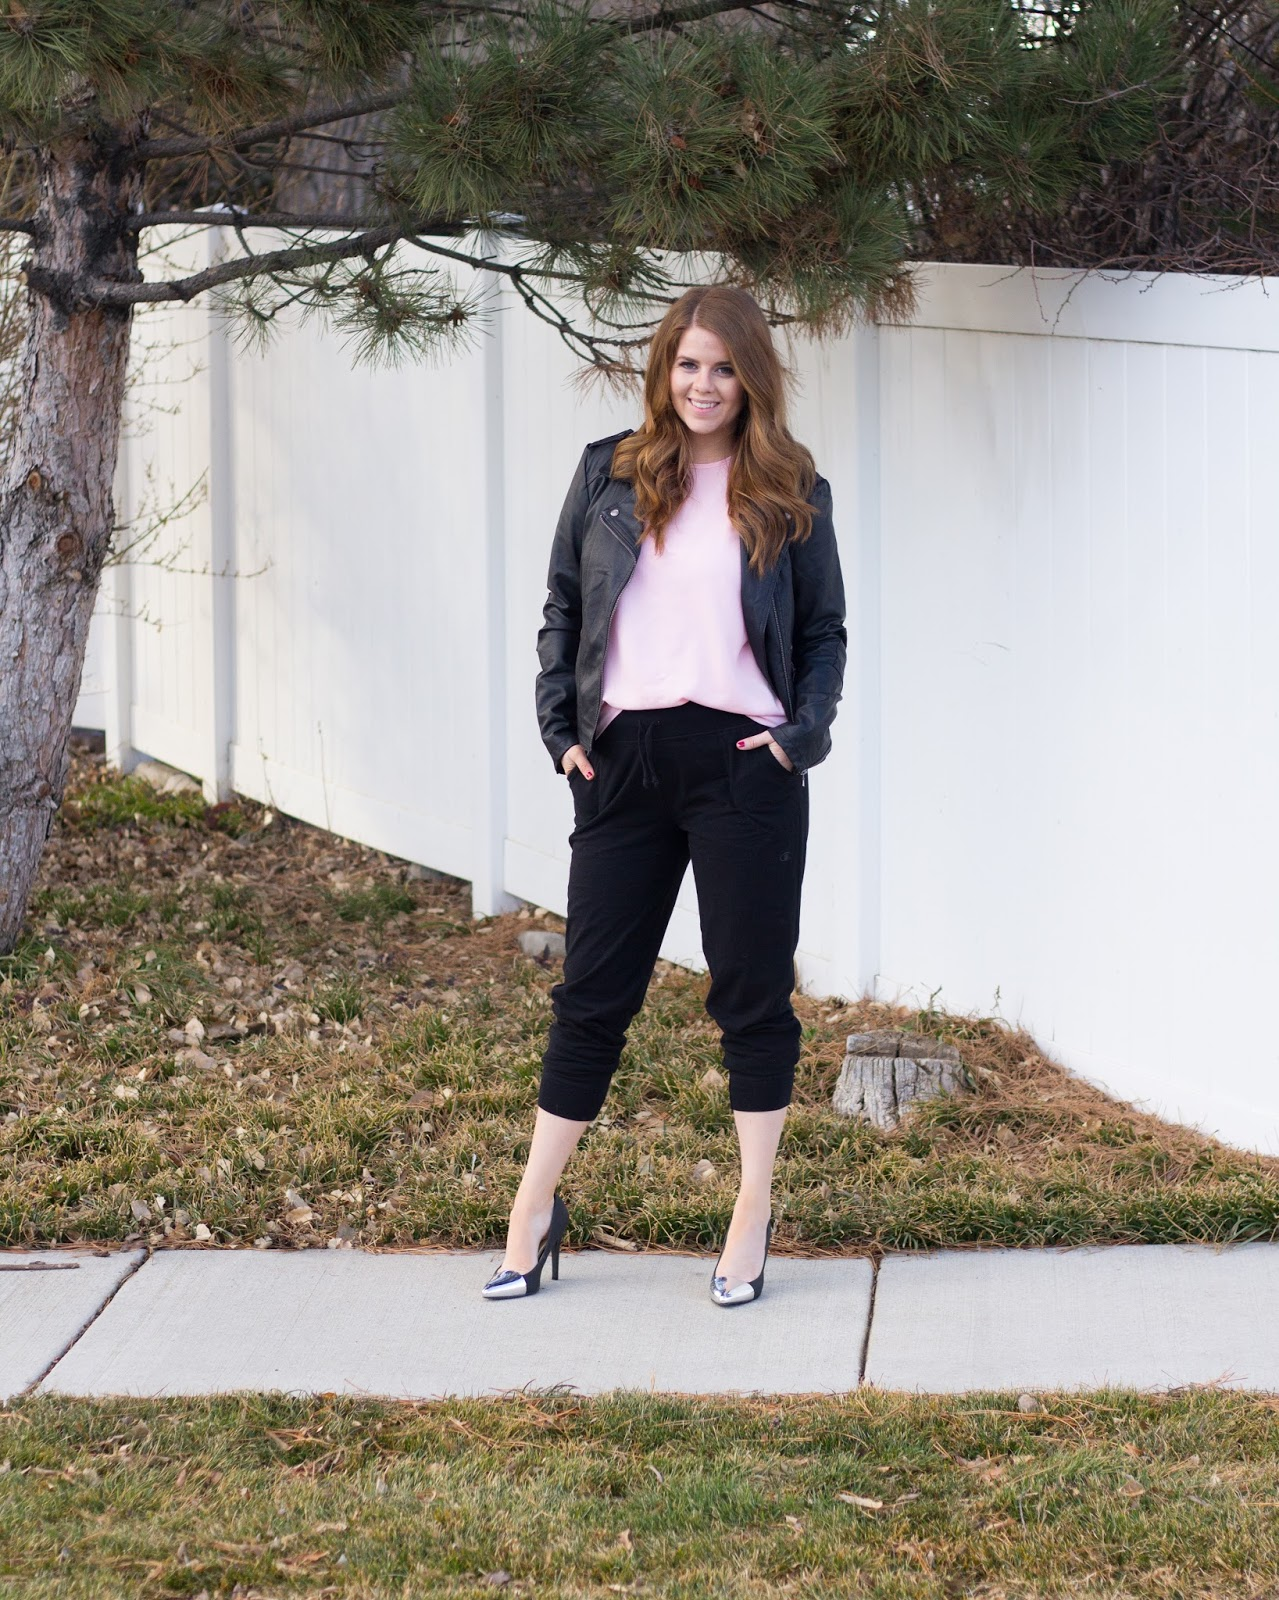 loungewear to datewear: joggers and a tee